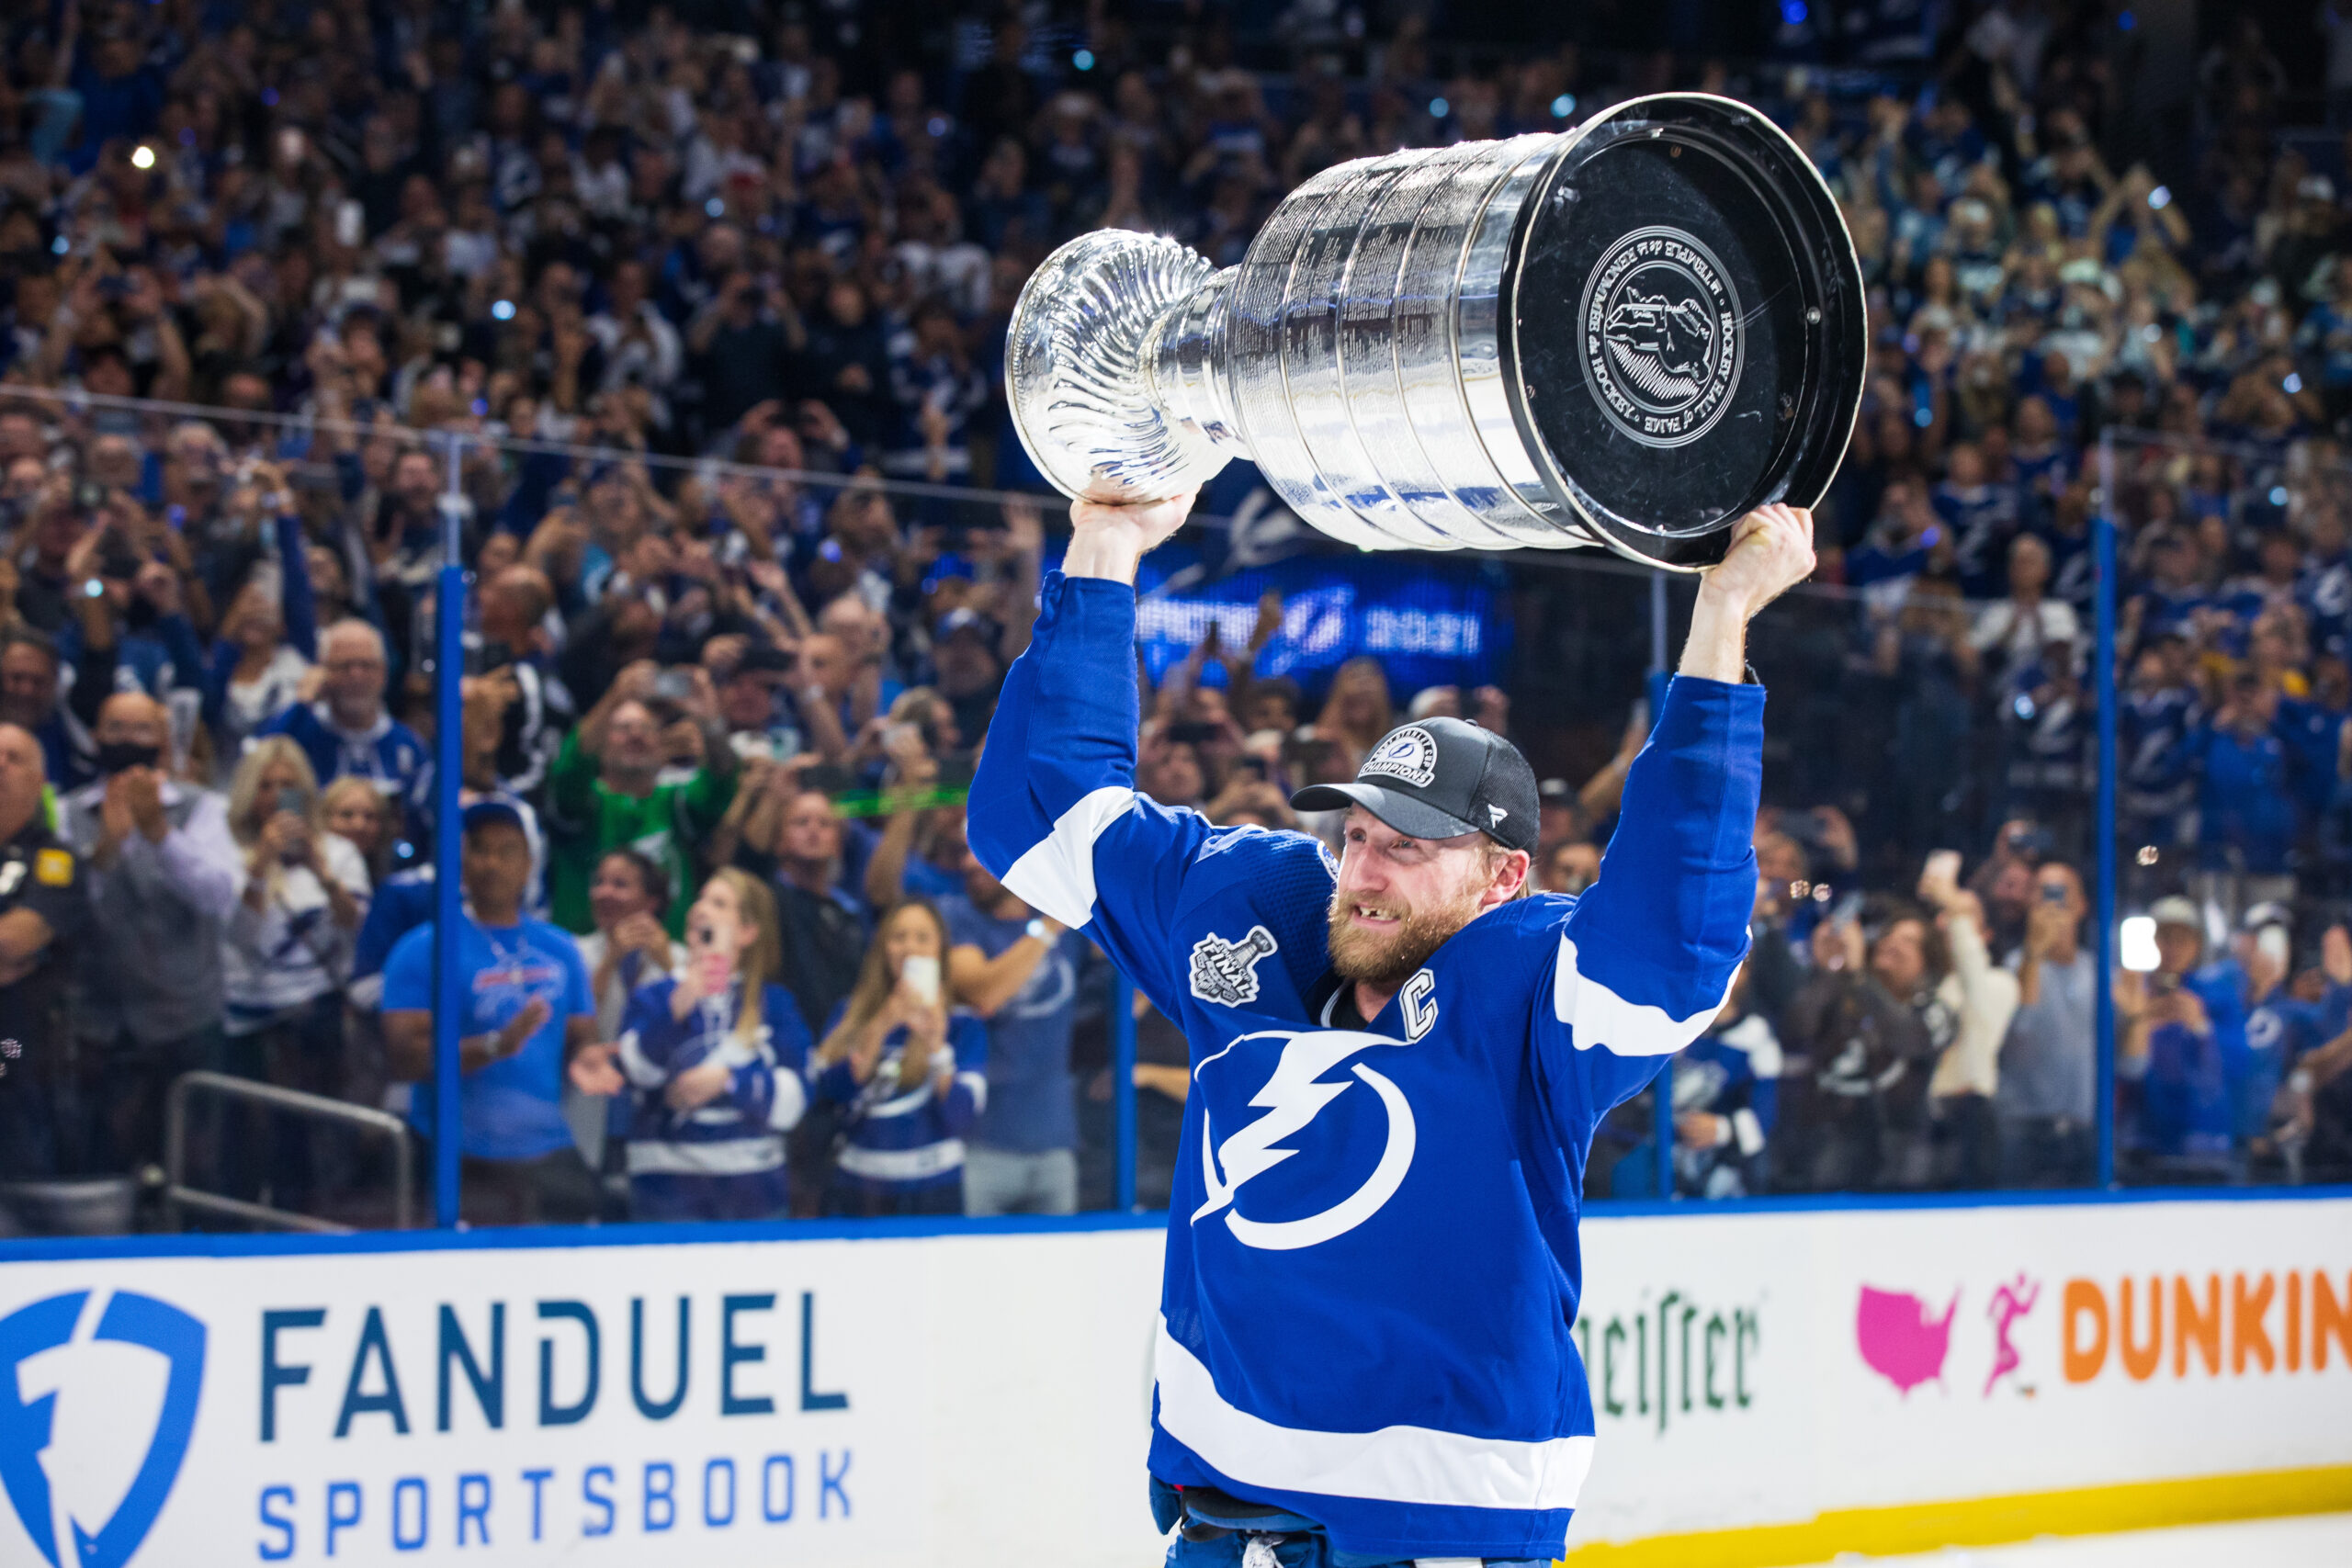 11 Lightning Players Could Play at the 2022 Beijing Olympic Games